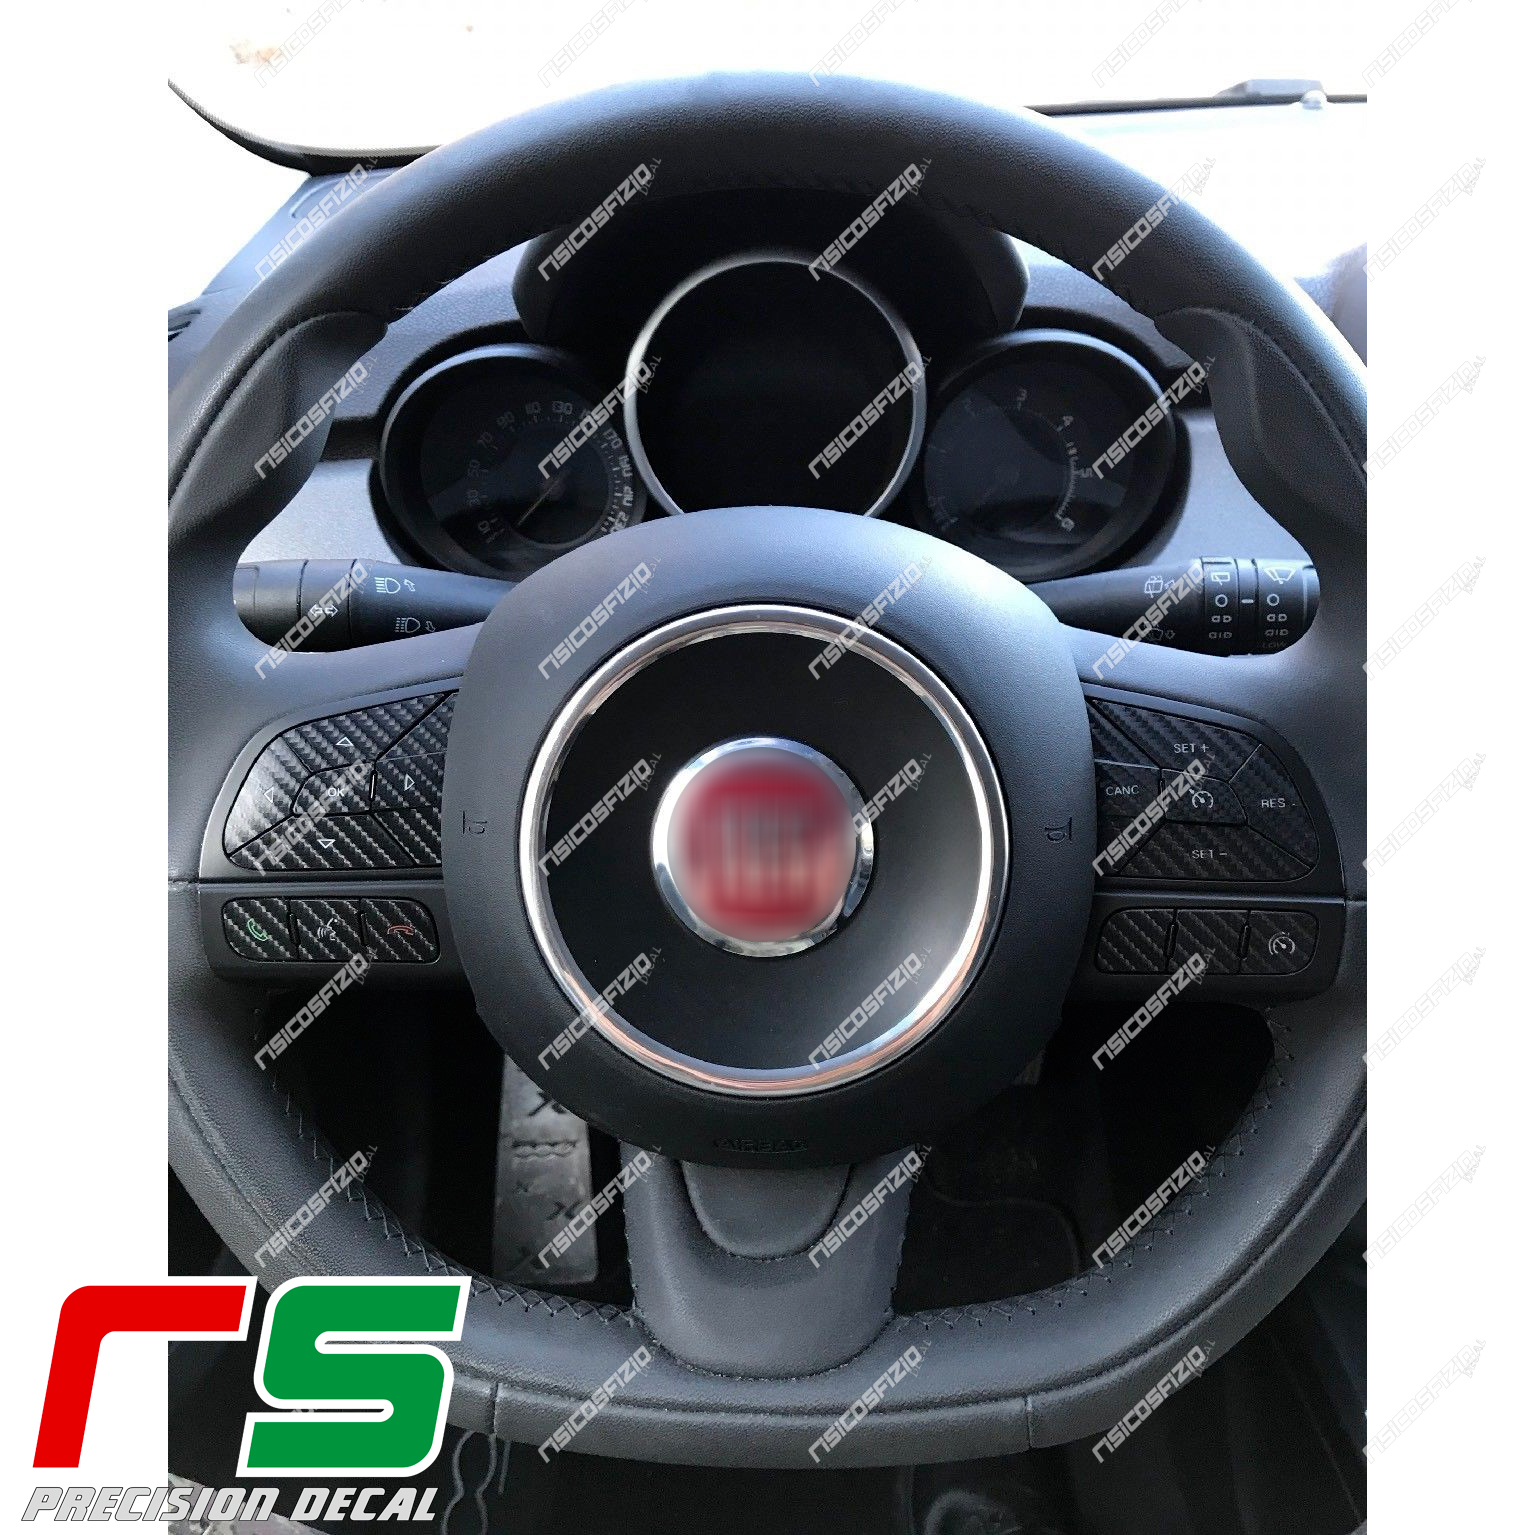 stickers Jeep Renegade Fiat 500x Type Decal carbonlook steering wheel